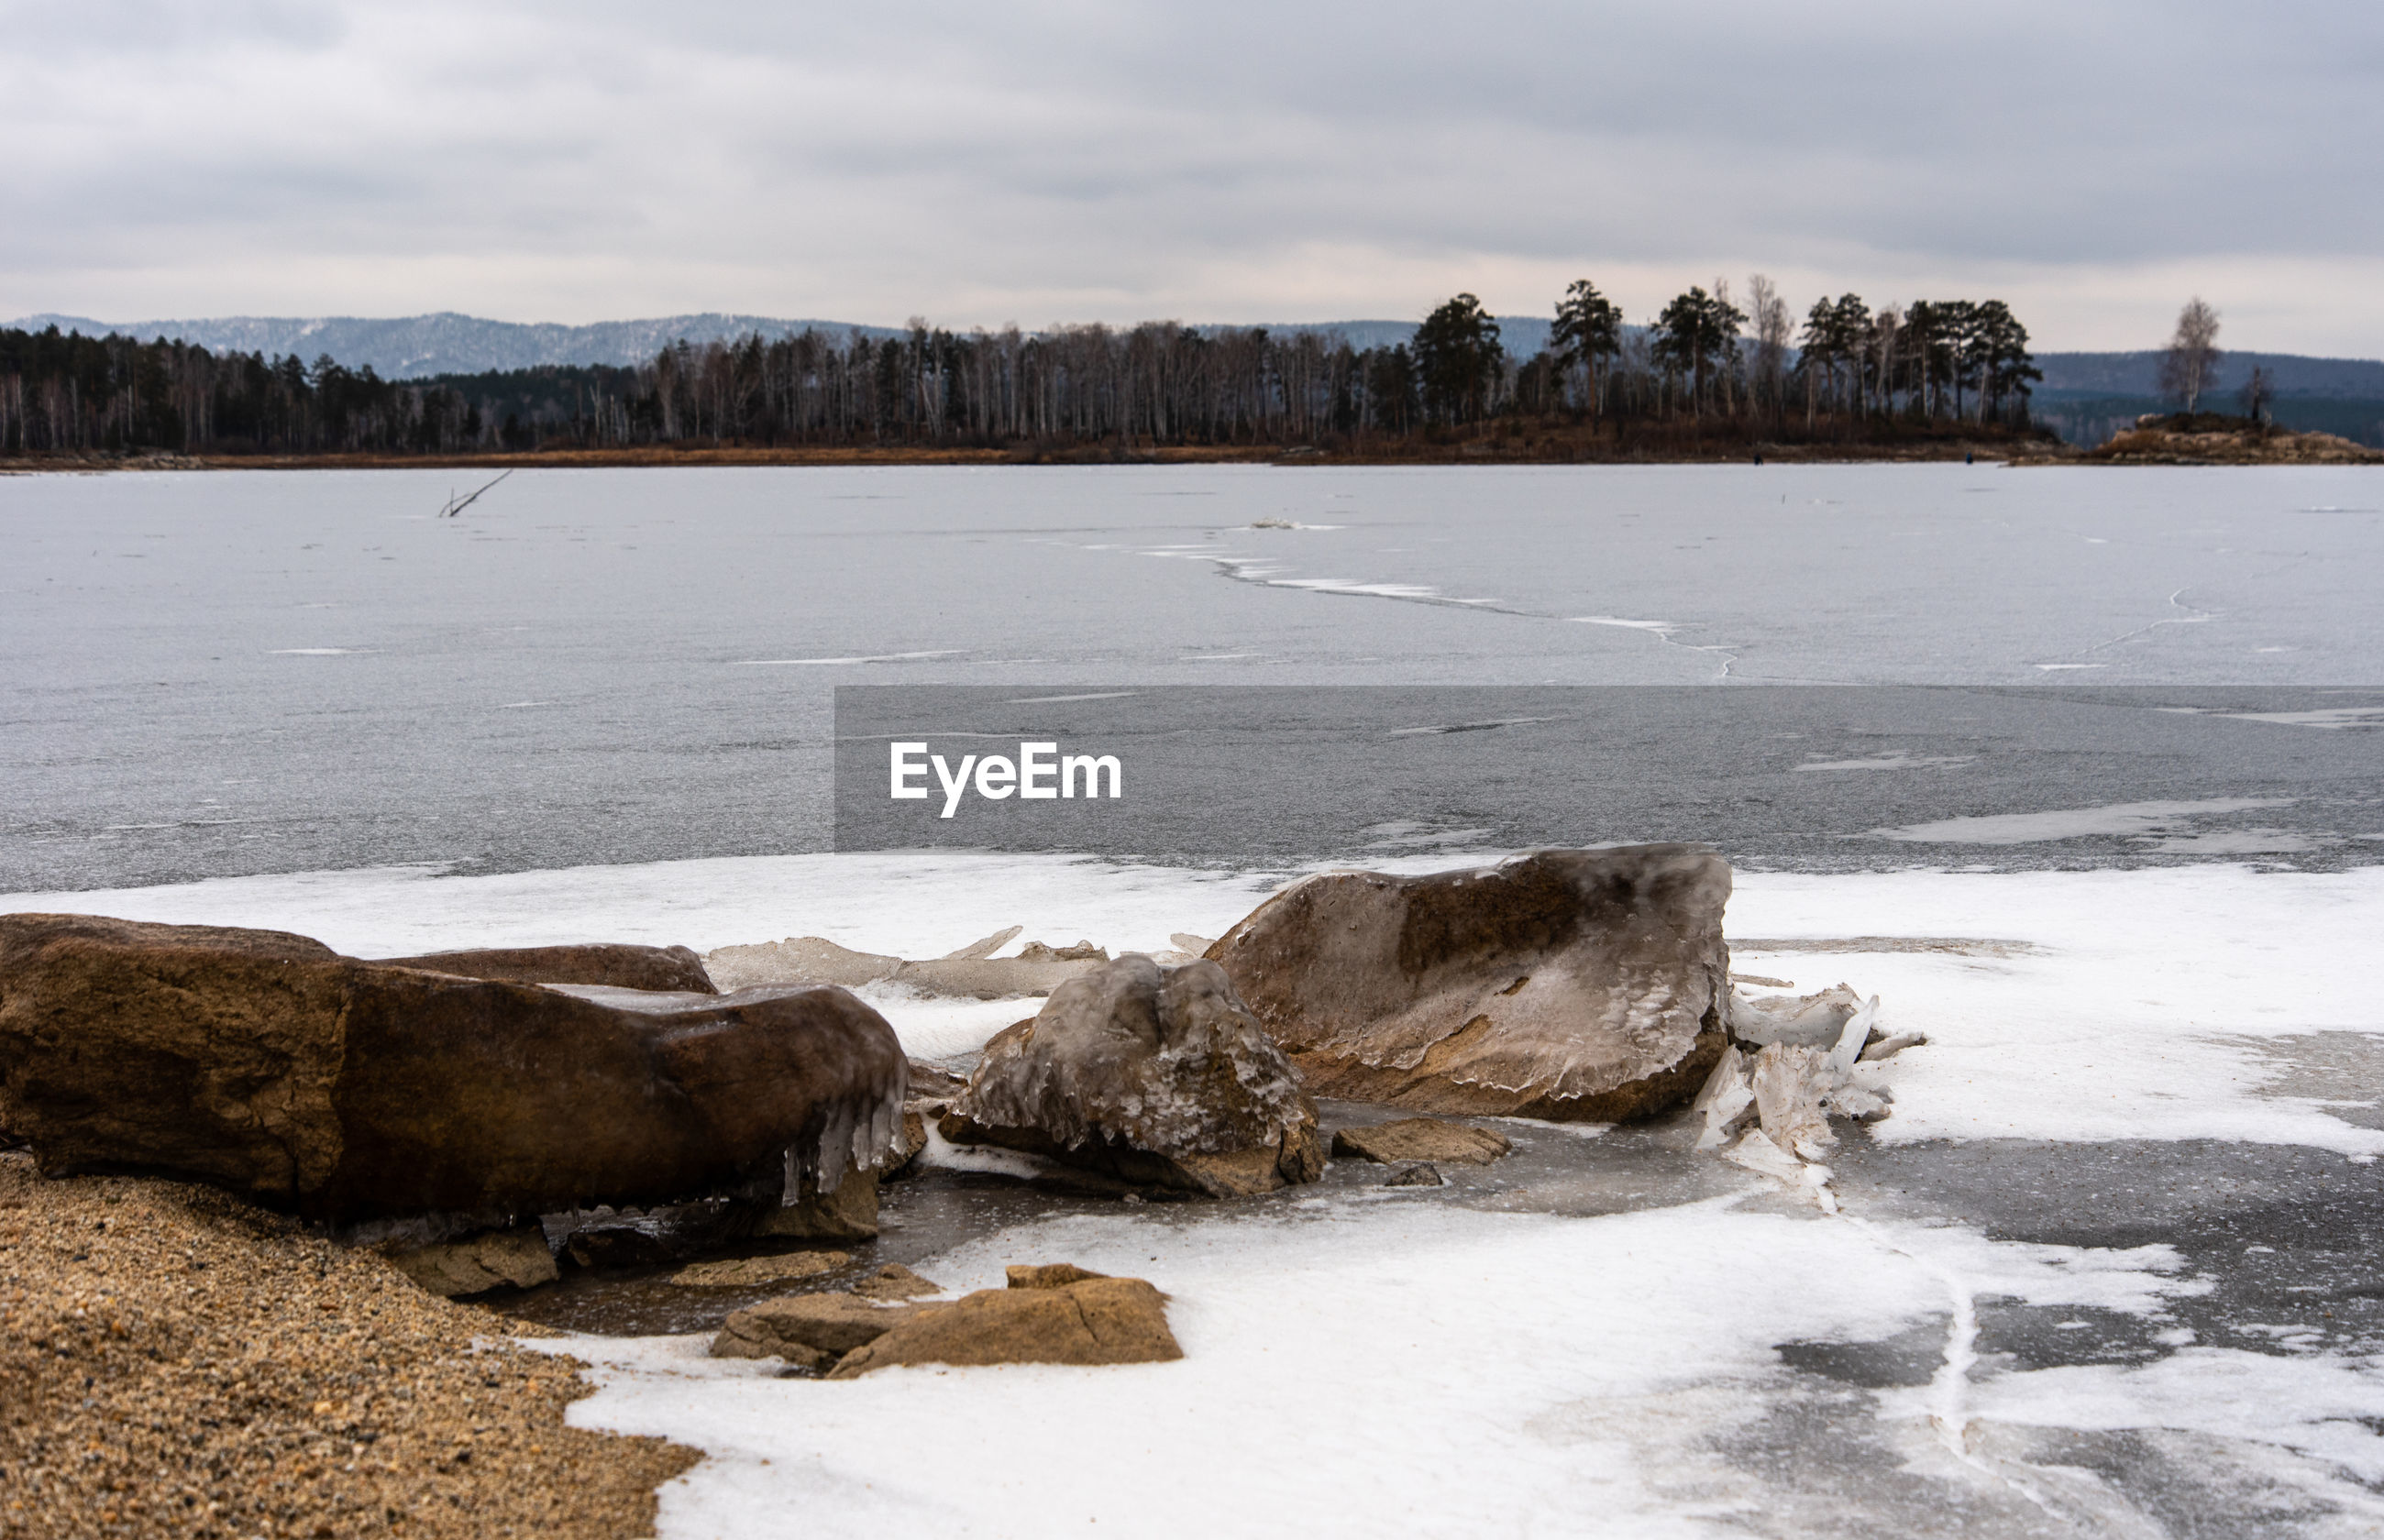 SCENIC VIEW OF FROZEN RIVER AGAINST SKY